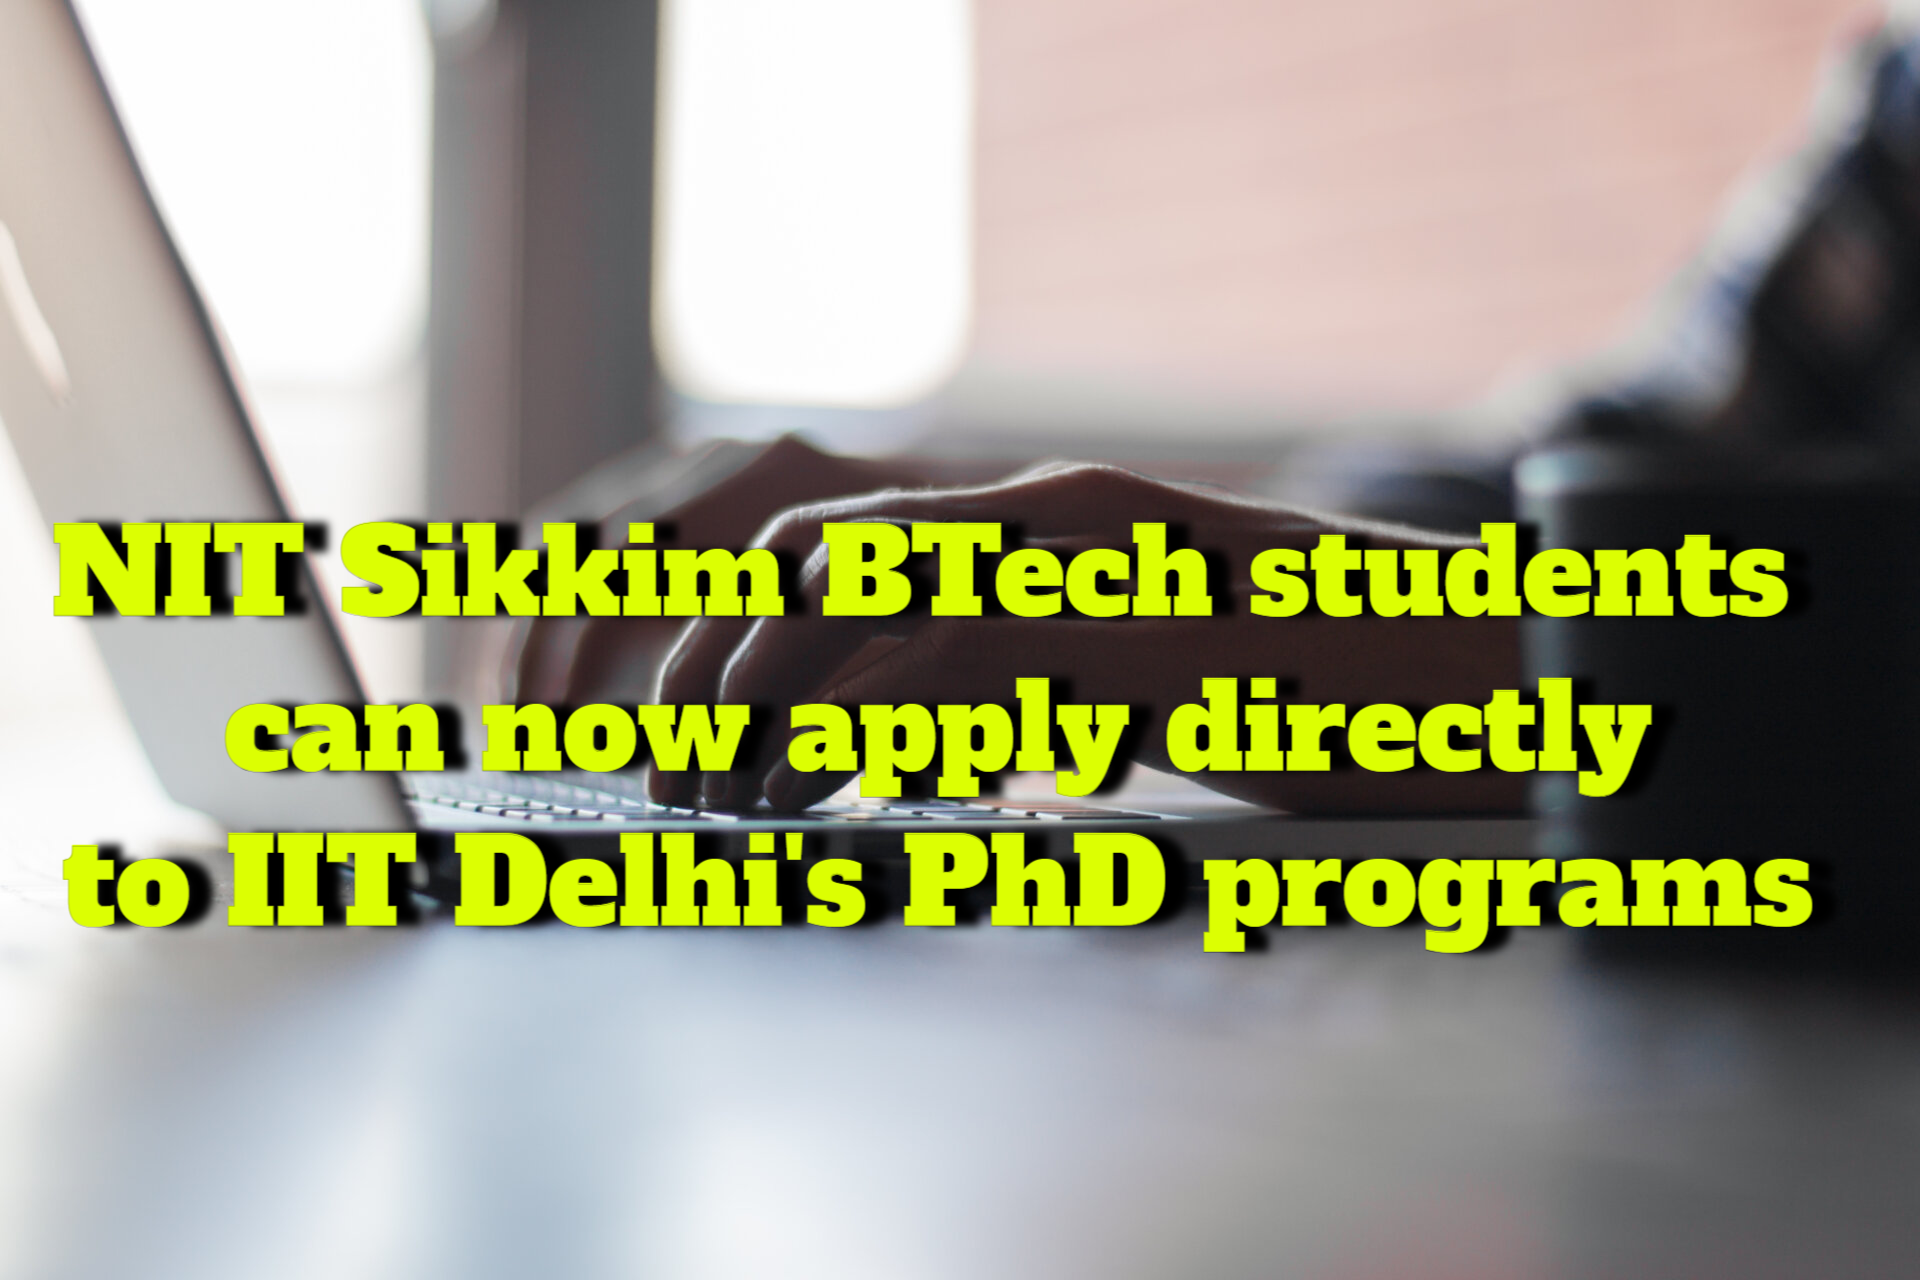 NIT Sikkim BTech students now have access to direct admission to IIT Delhi PhD programs